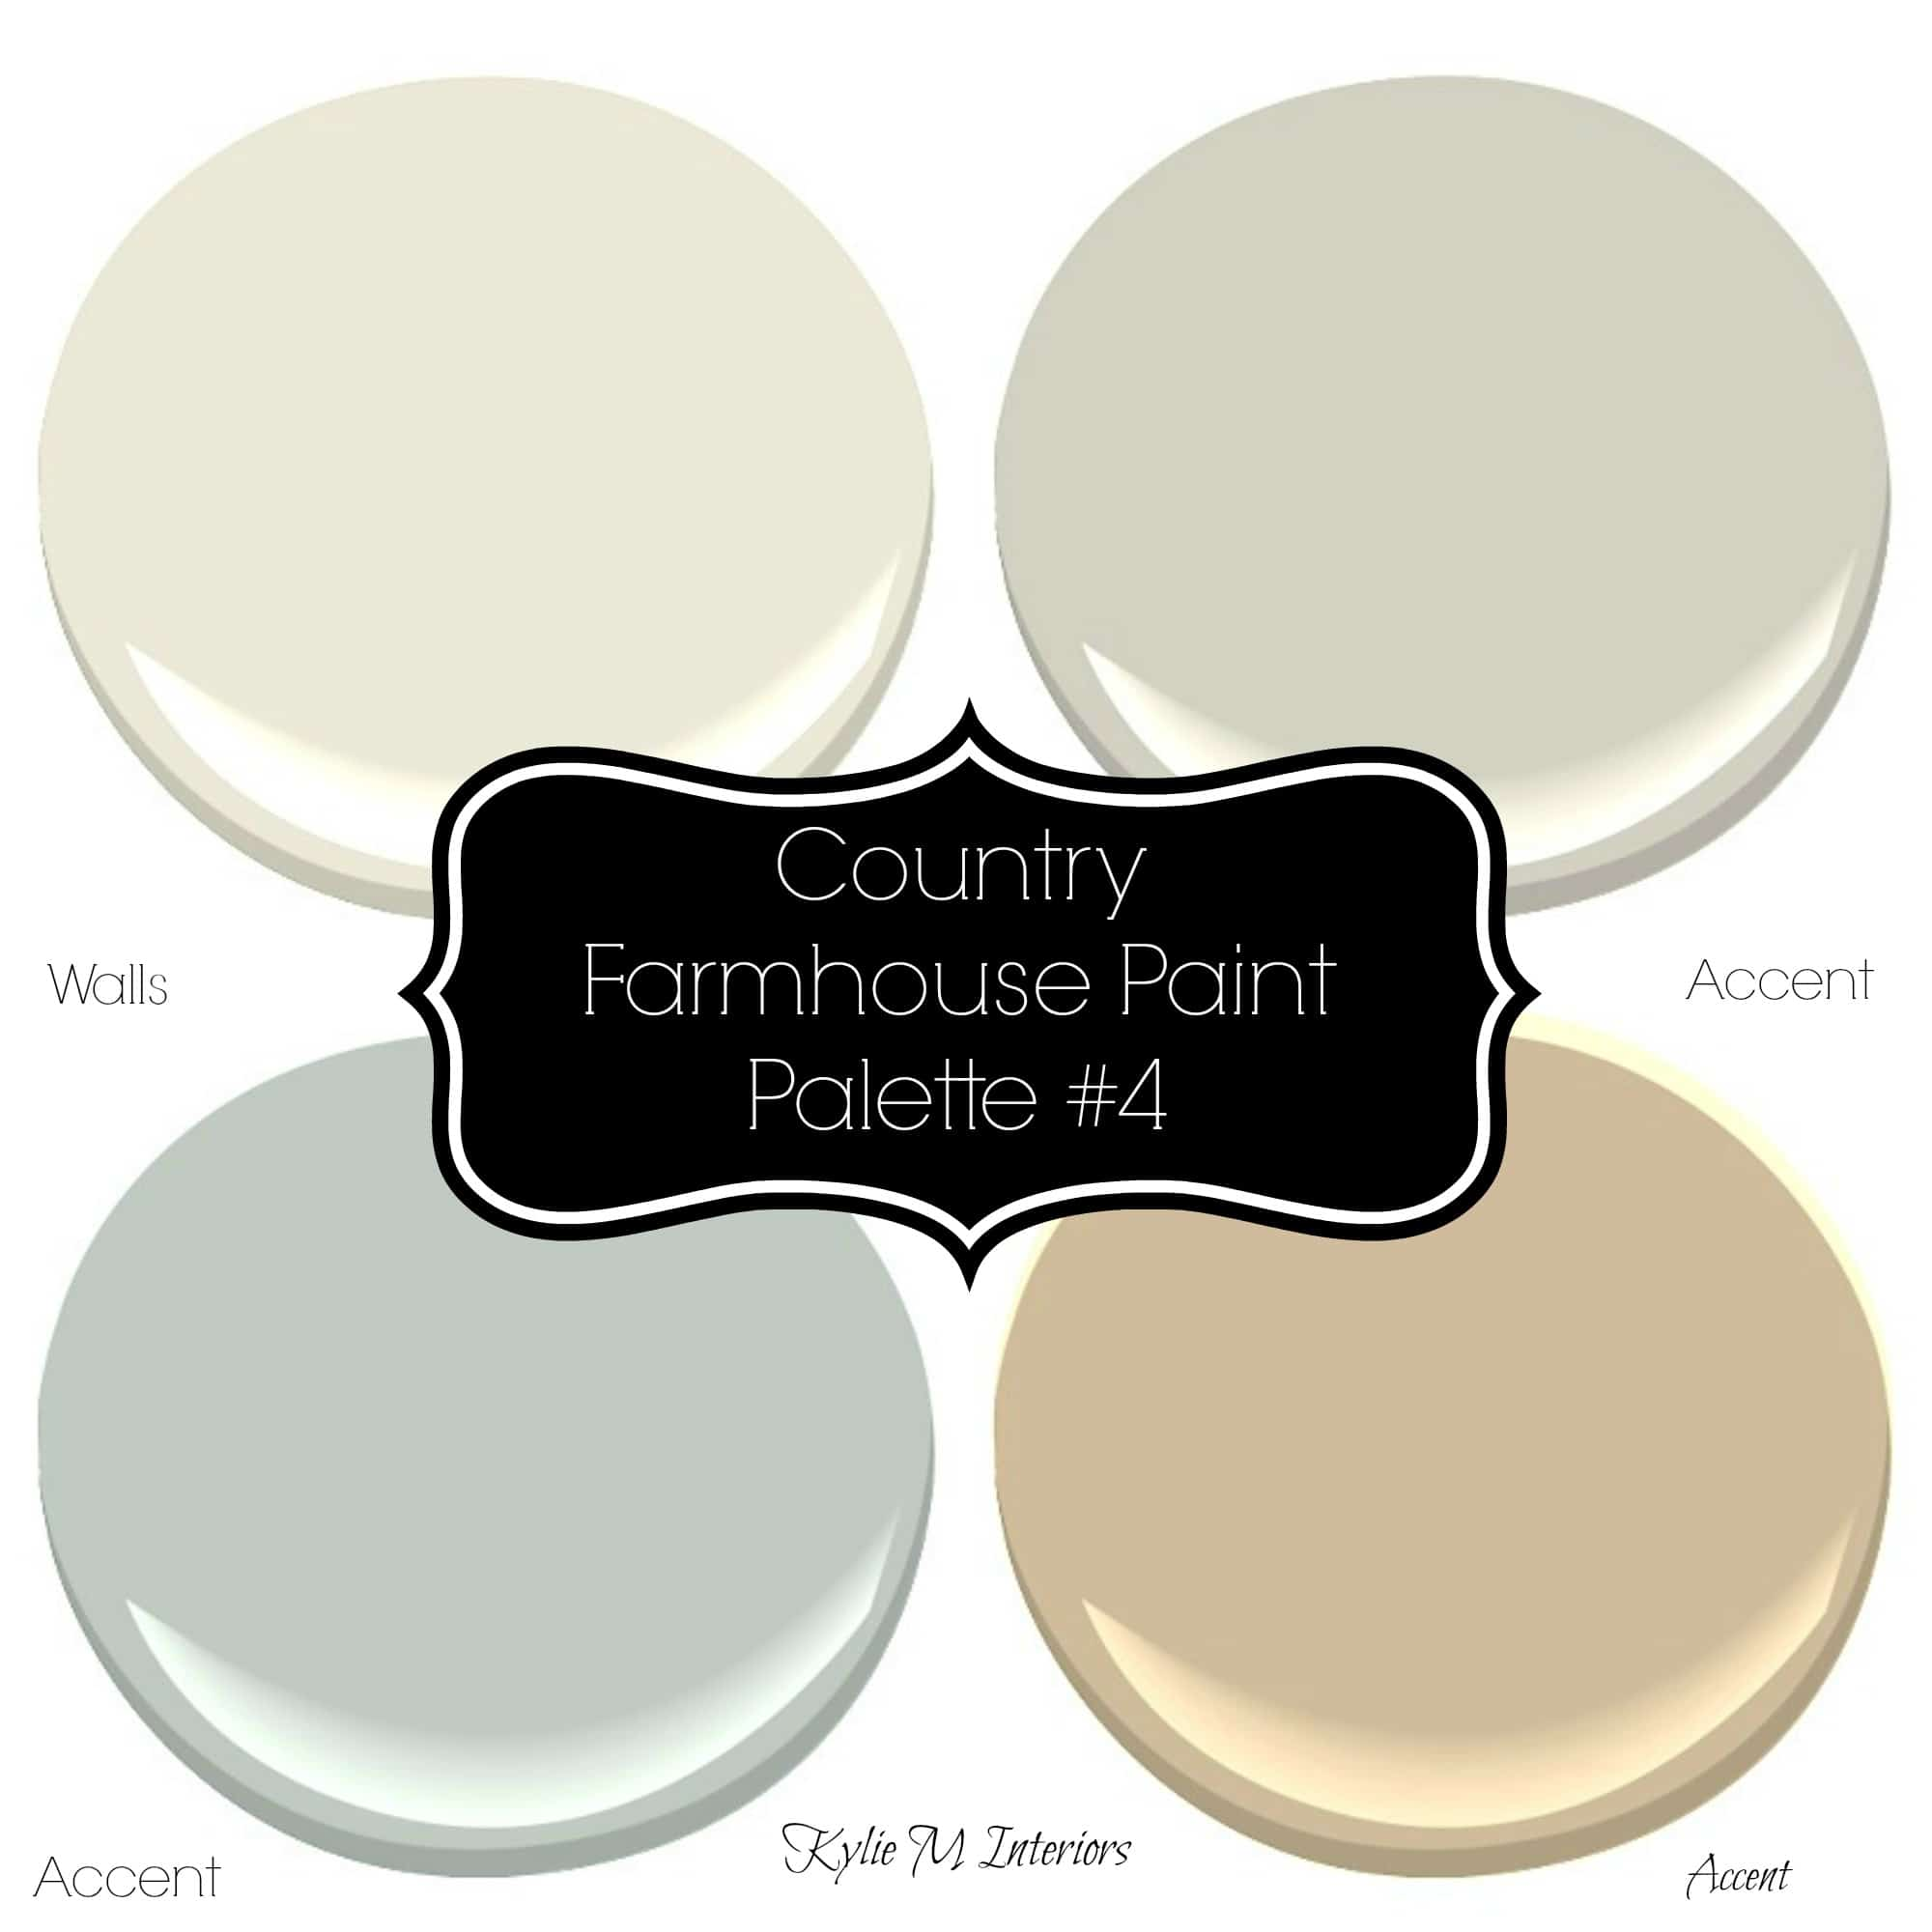 Colors sherwin williams paint coloranswers house paints for Farmhouse paint colors interior